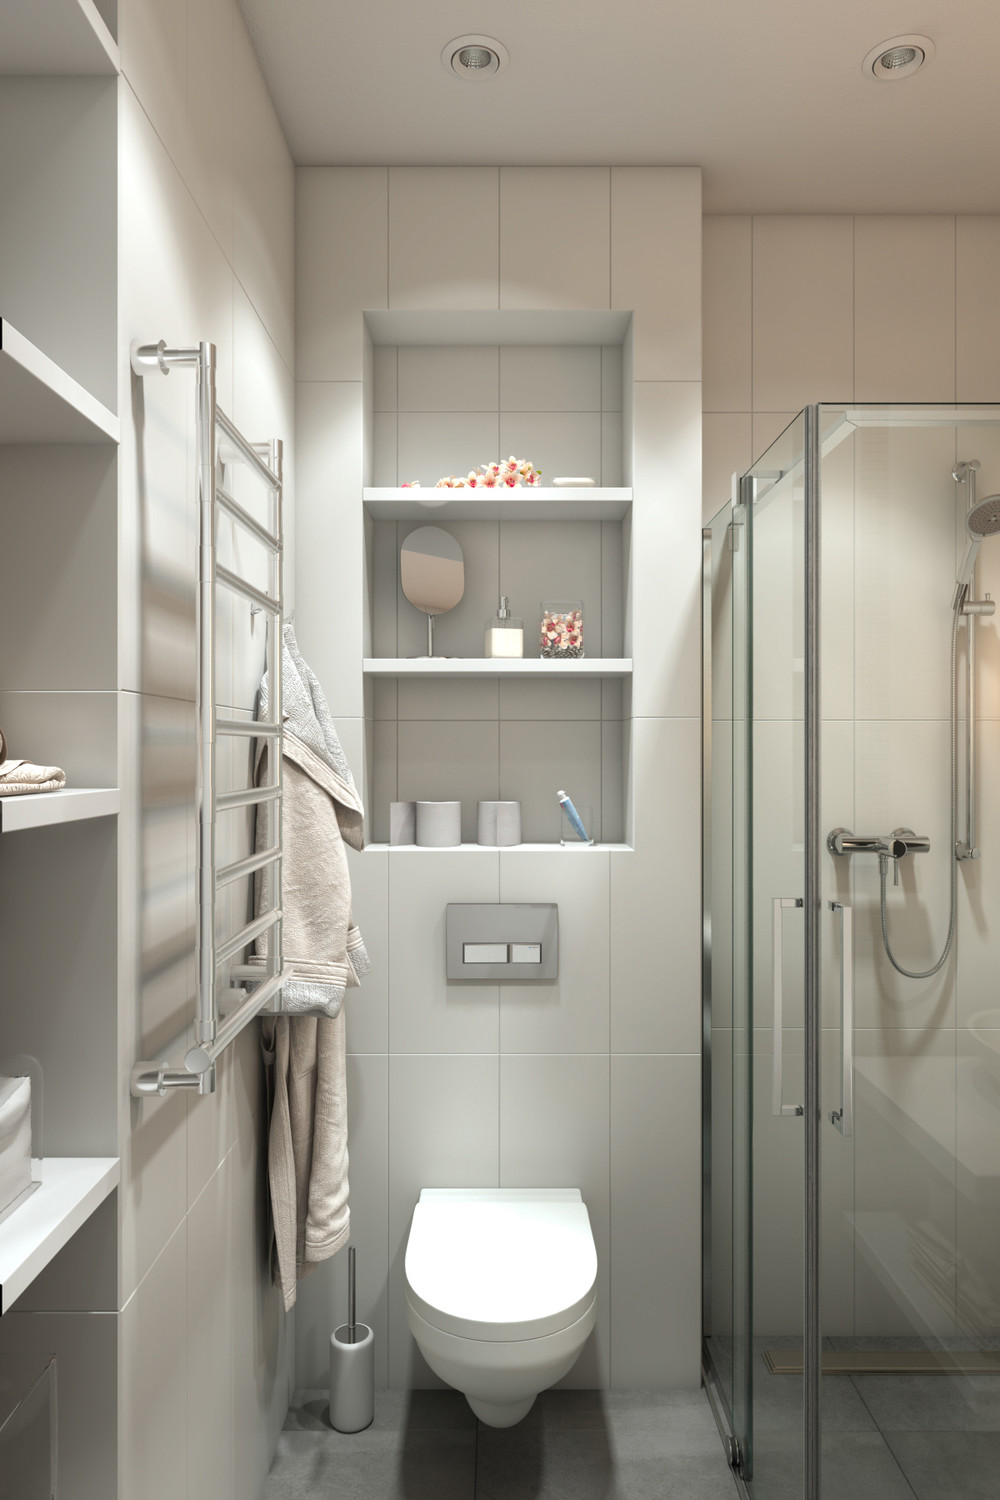 Shower Stall With Corner Doors - 4 small apartments showcase the flexibility of compact design